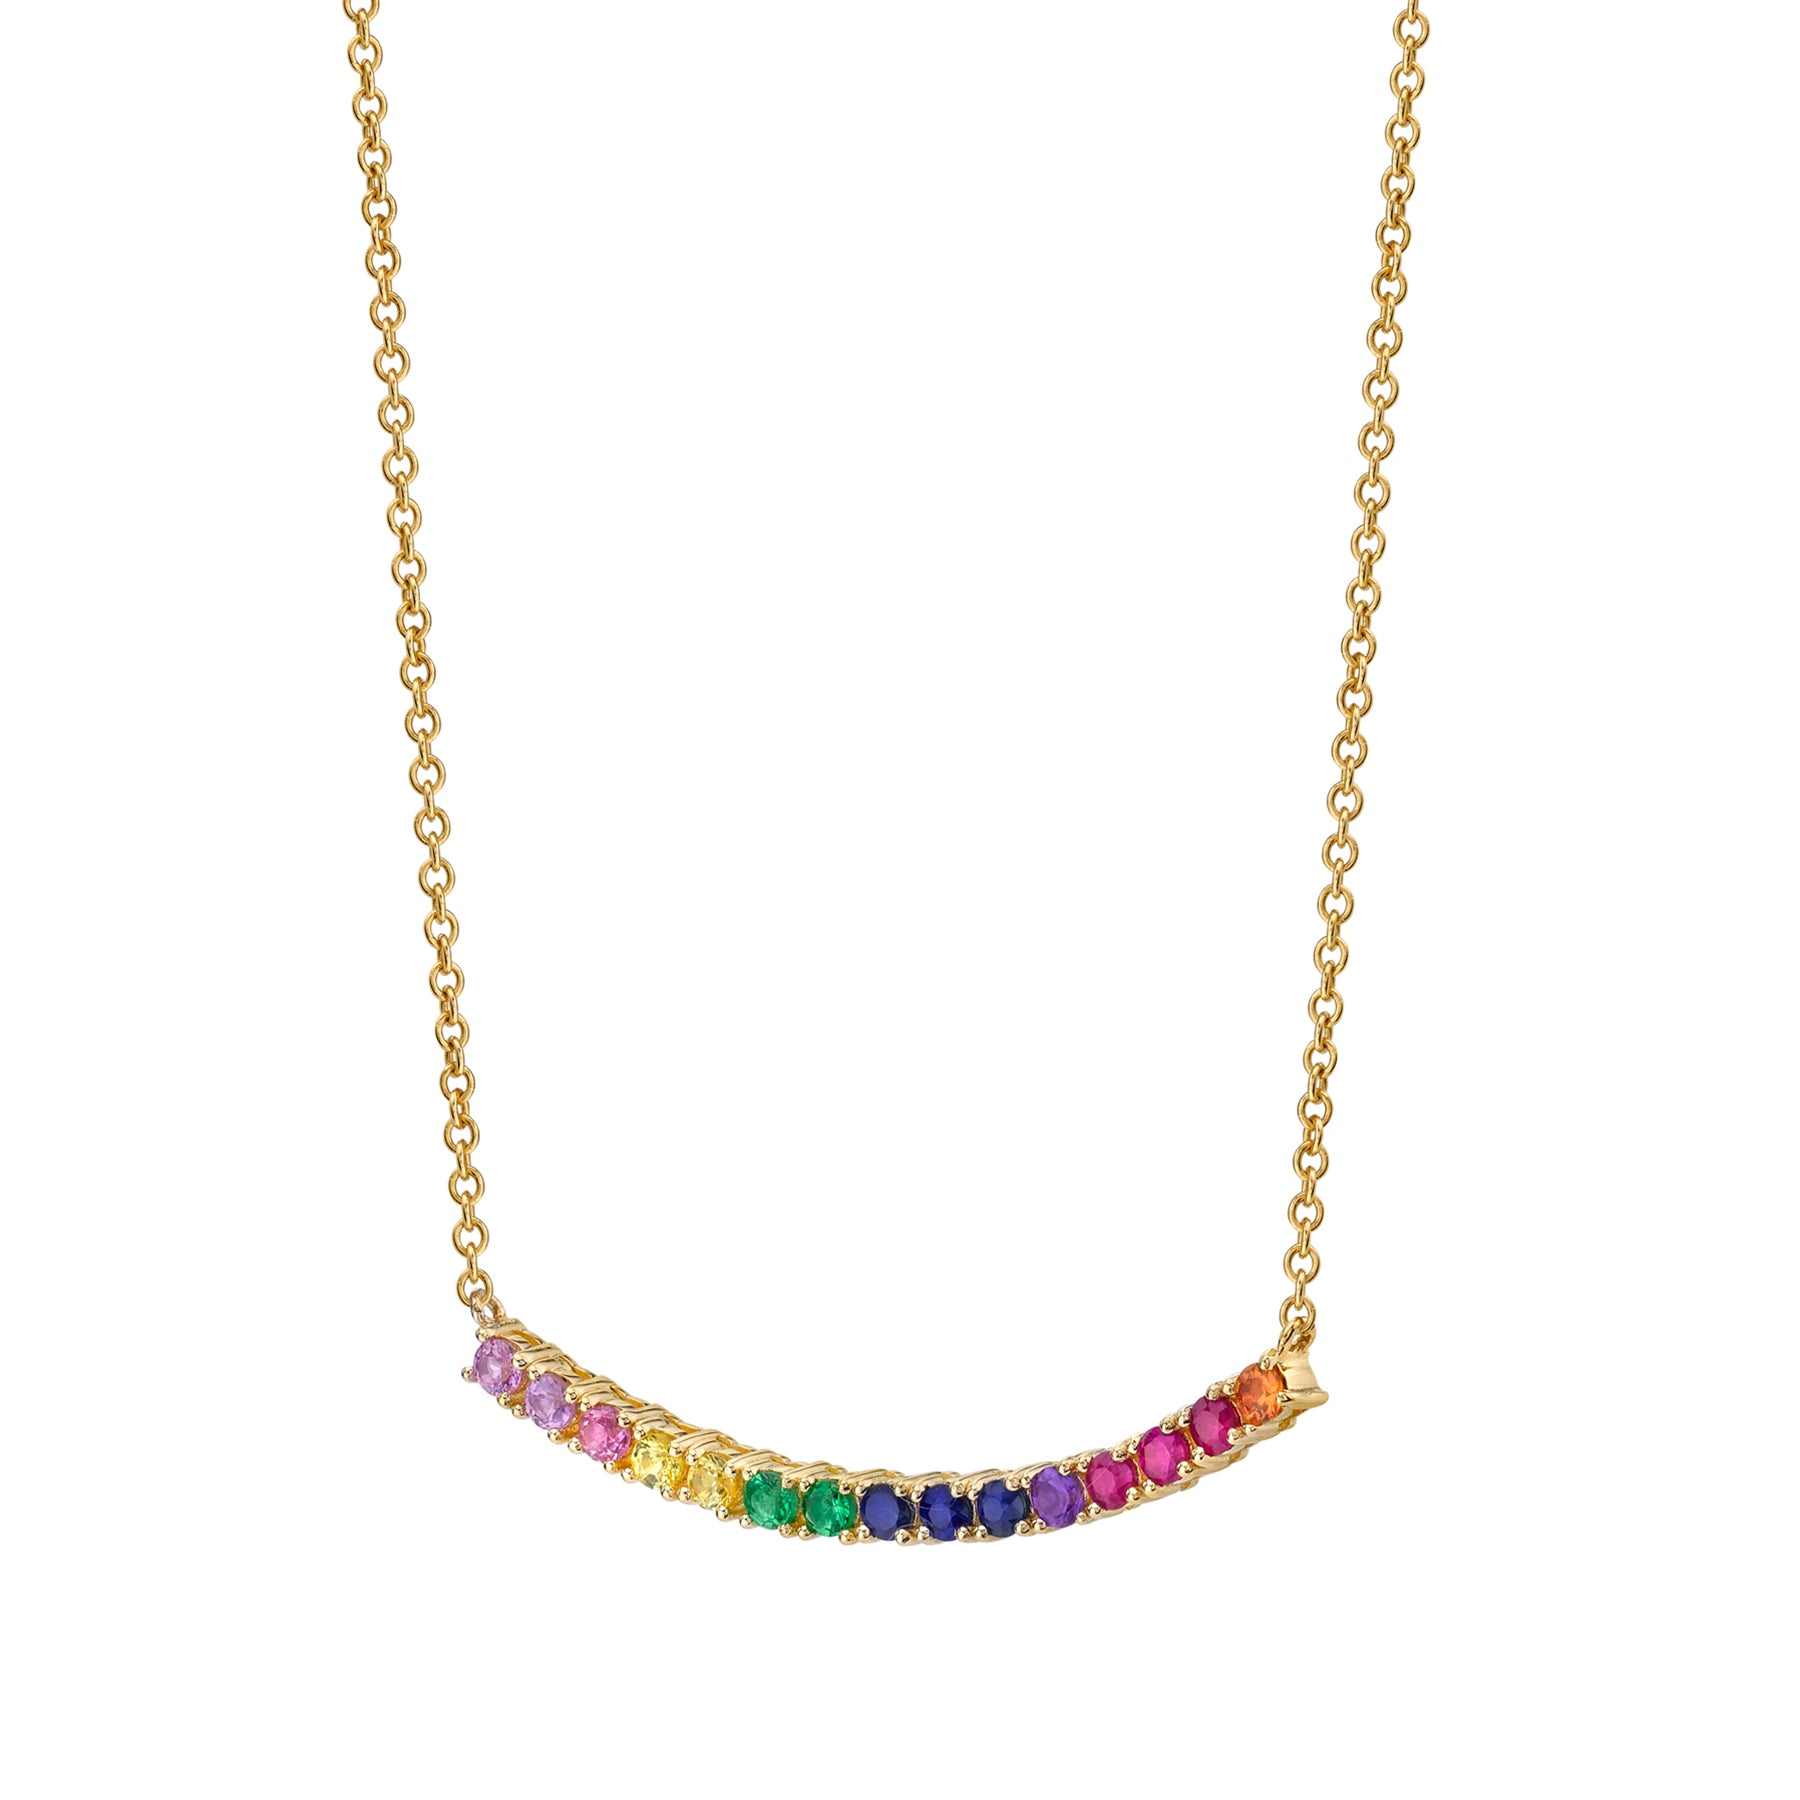 necklace sharpen fmt usm cloud resmode hei bicub rainbow qlt op coach and